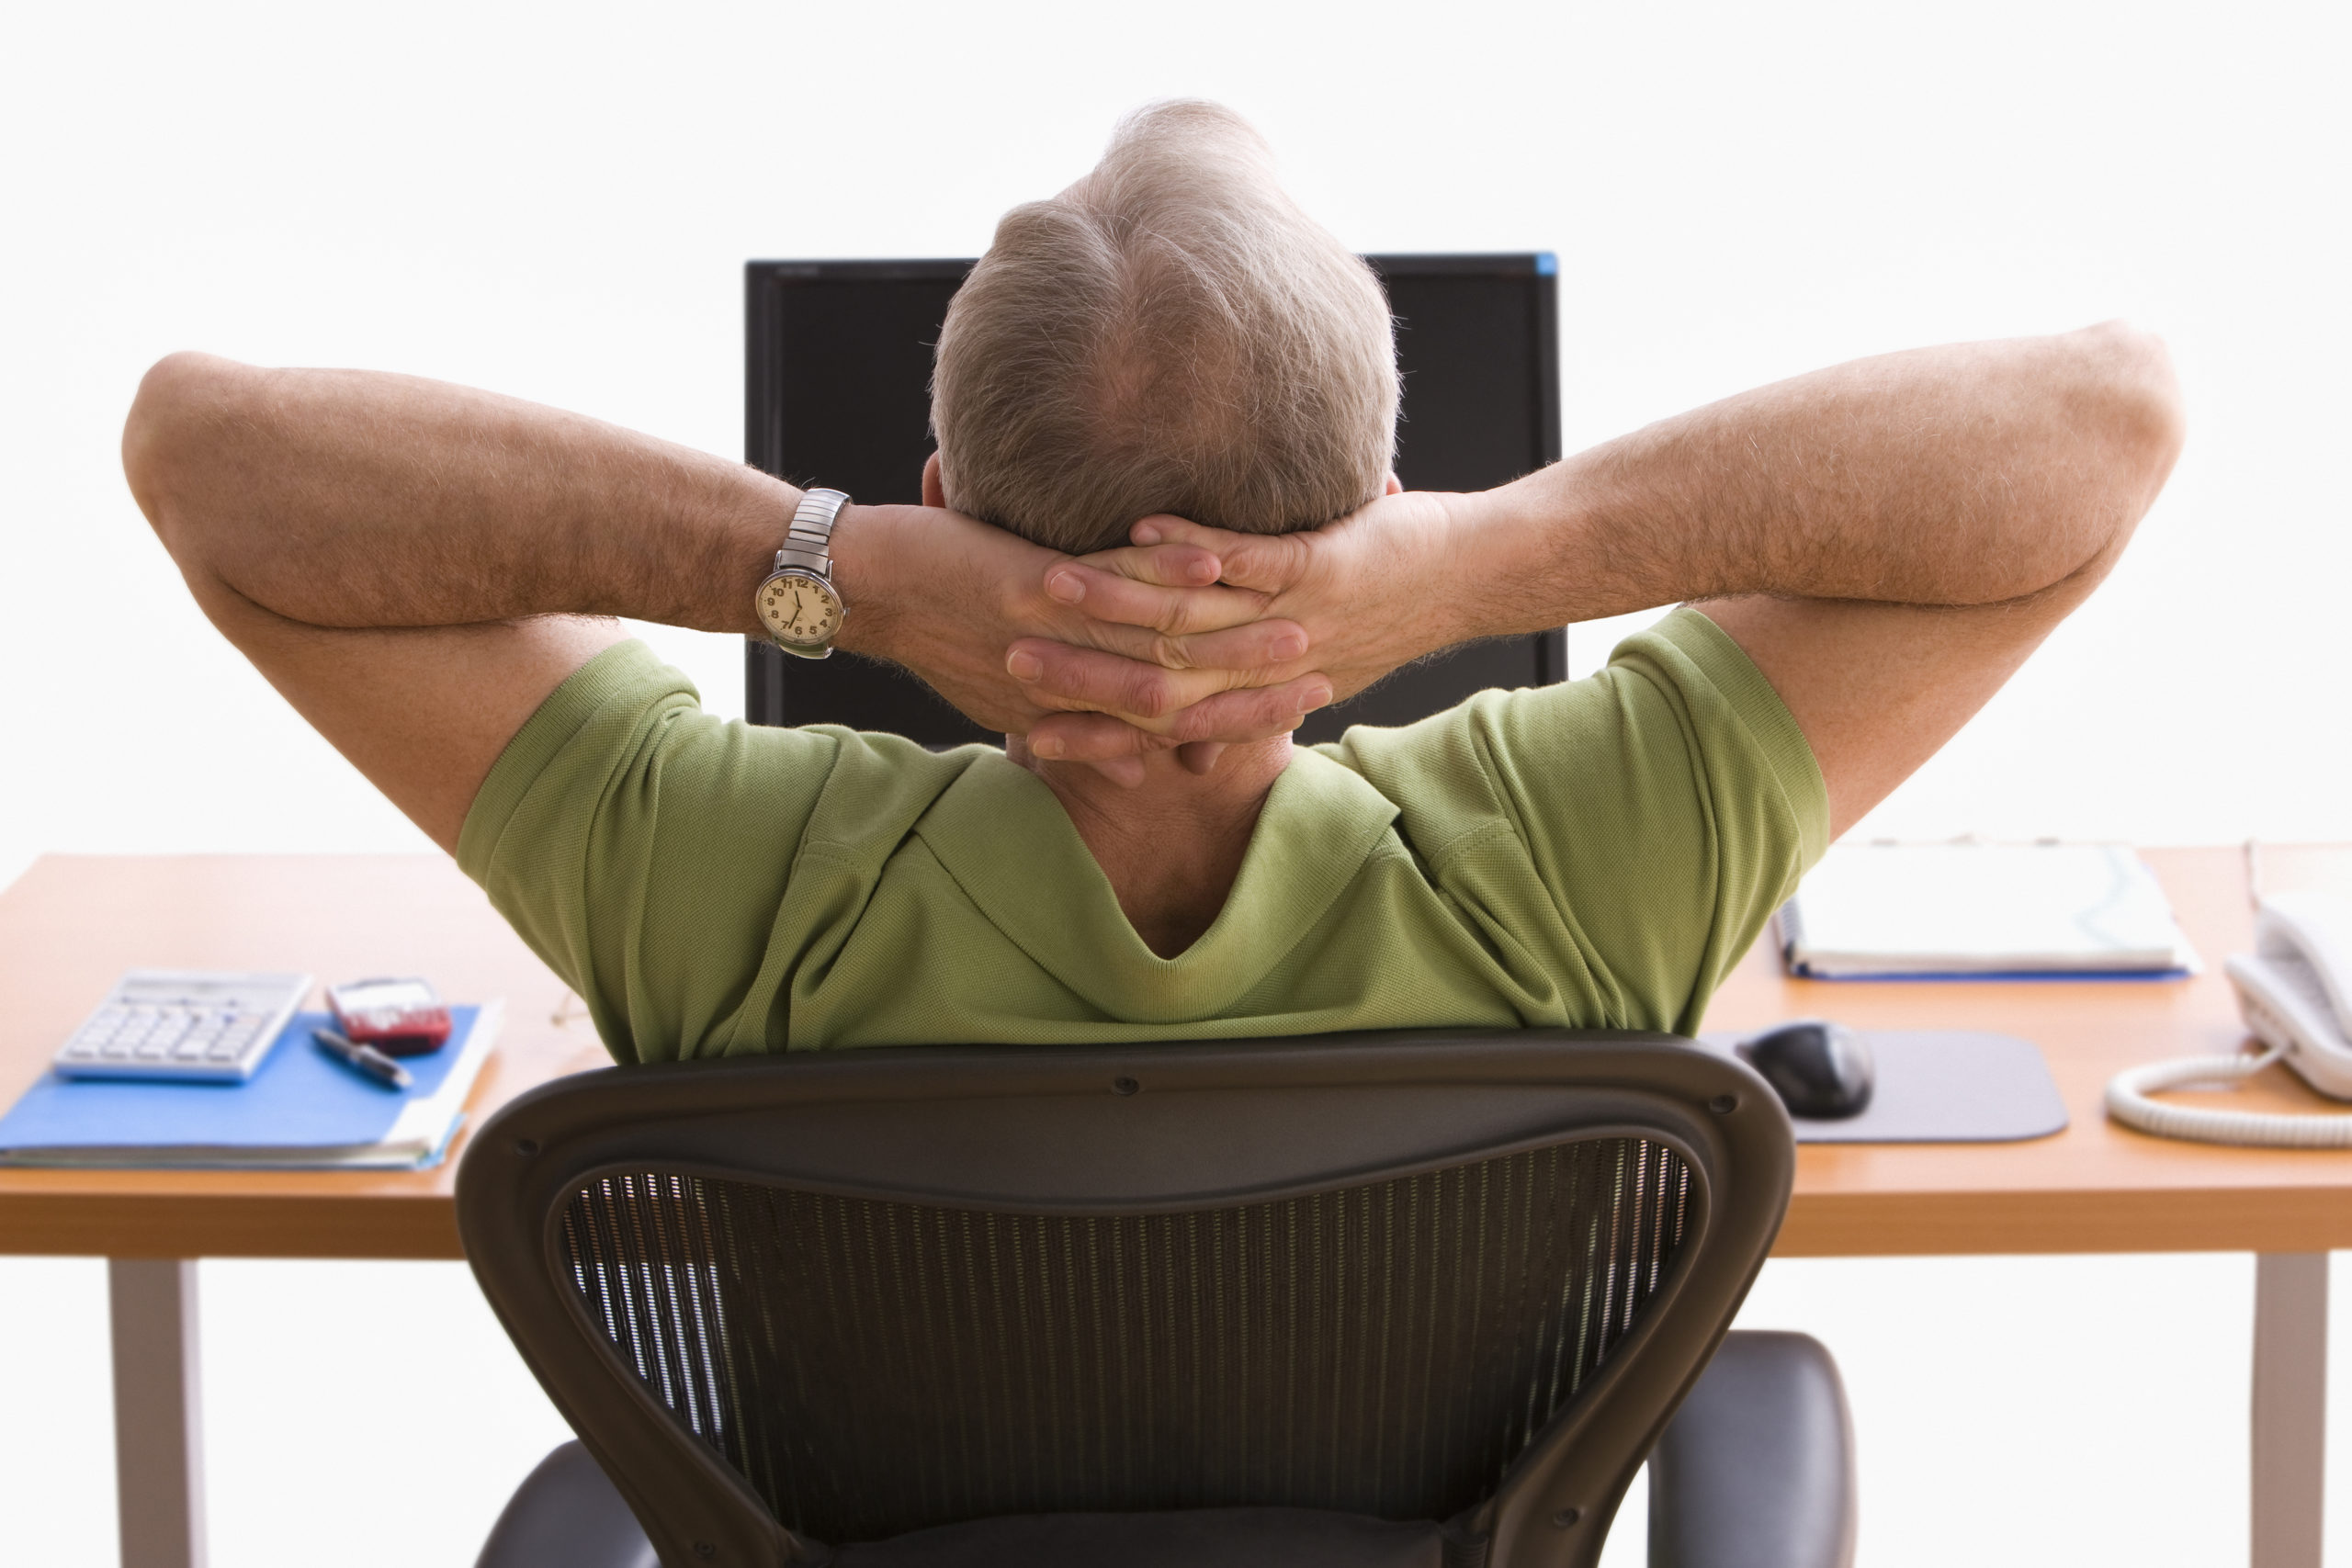 senior man leaning back in computer chair with hands behind his head looking at computer screen